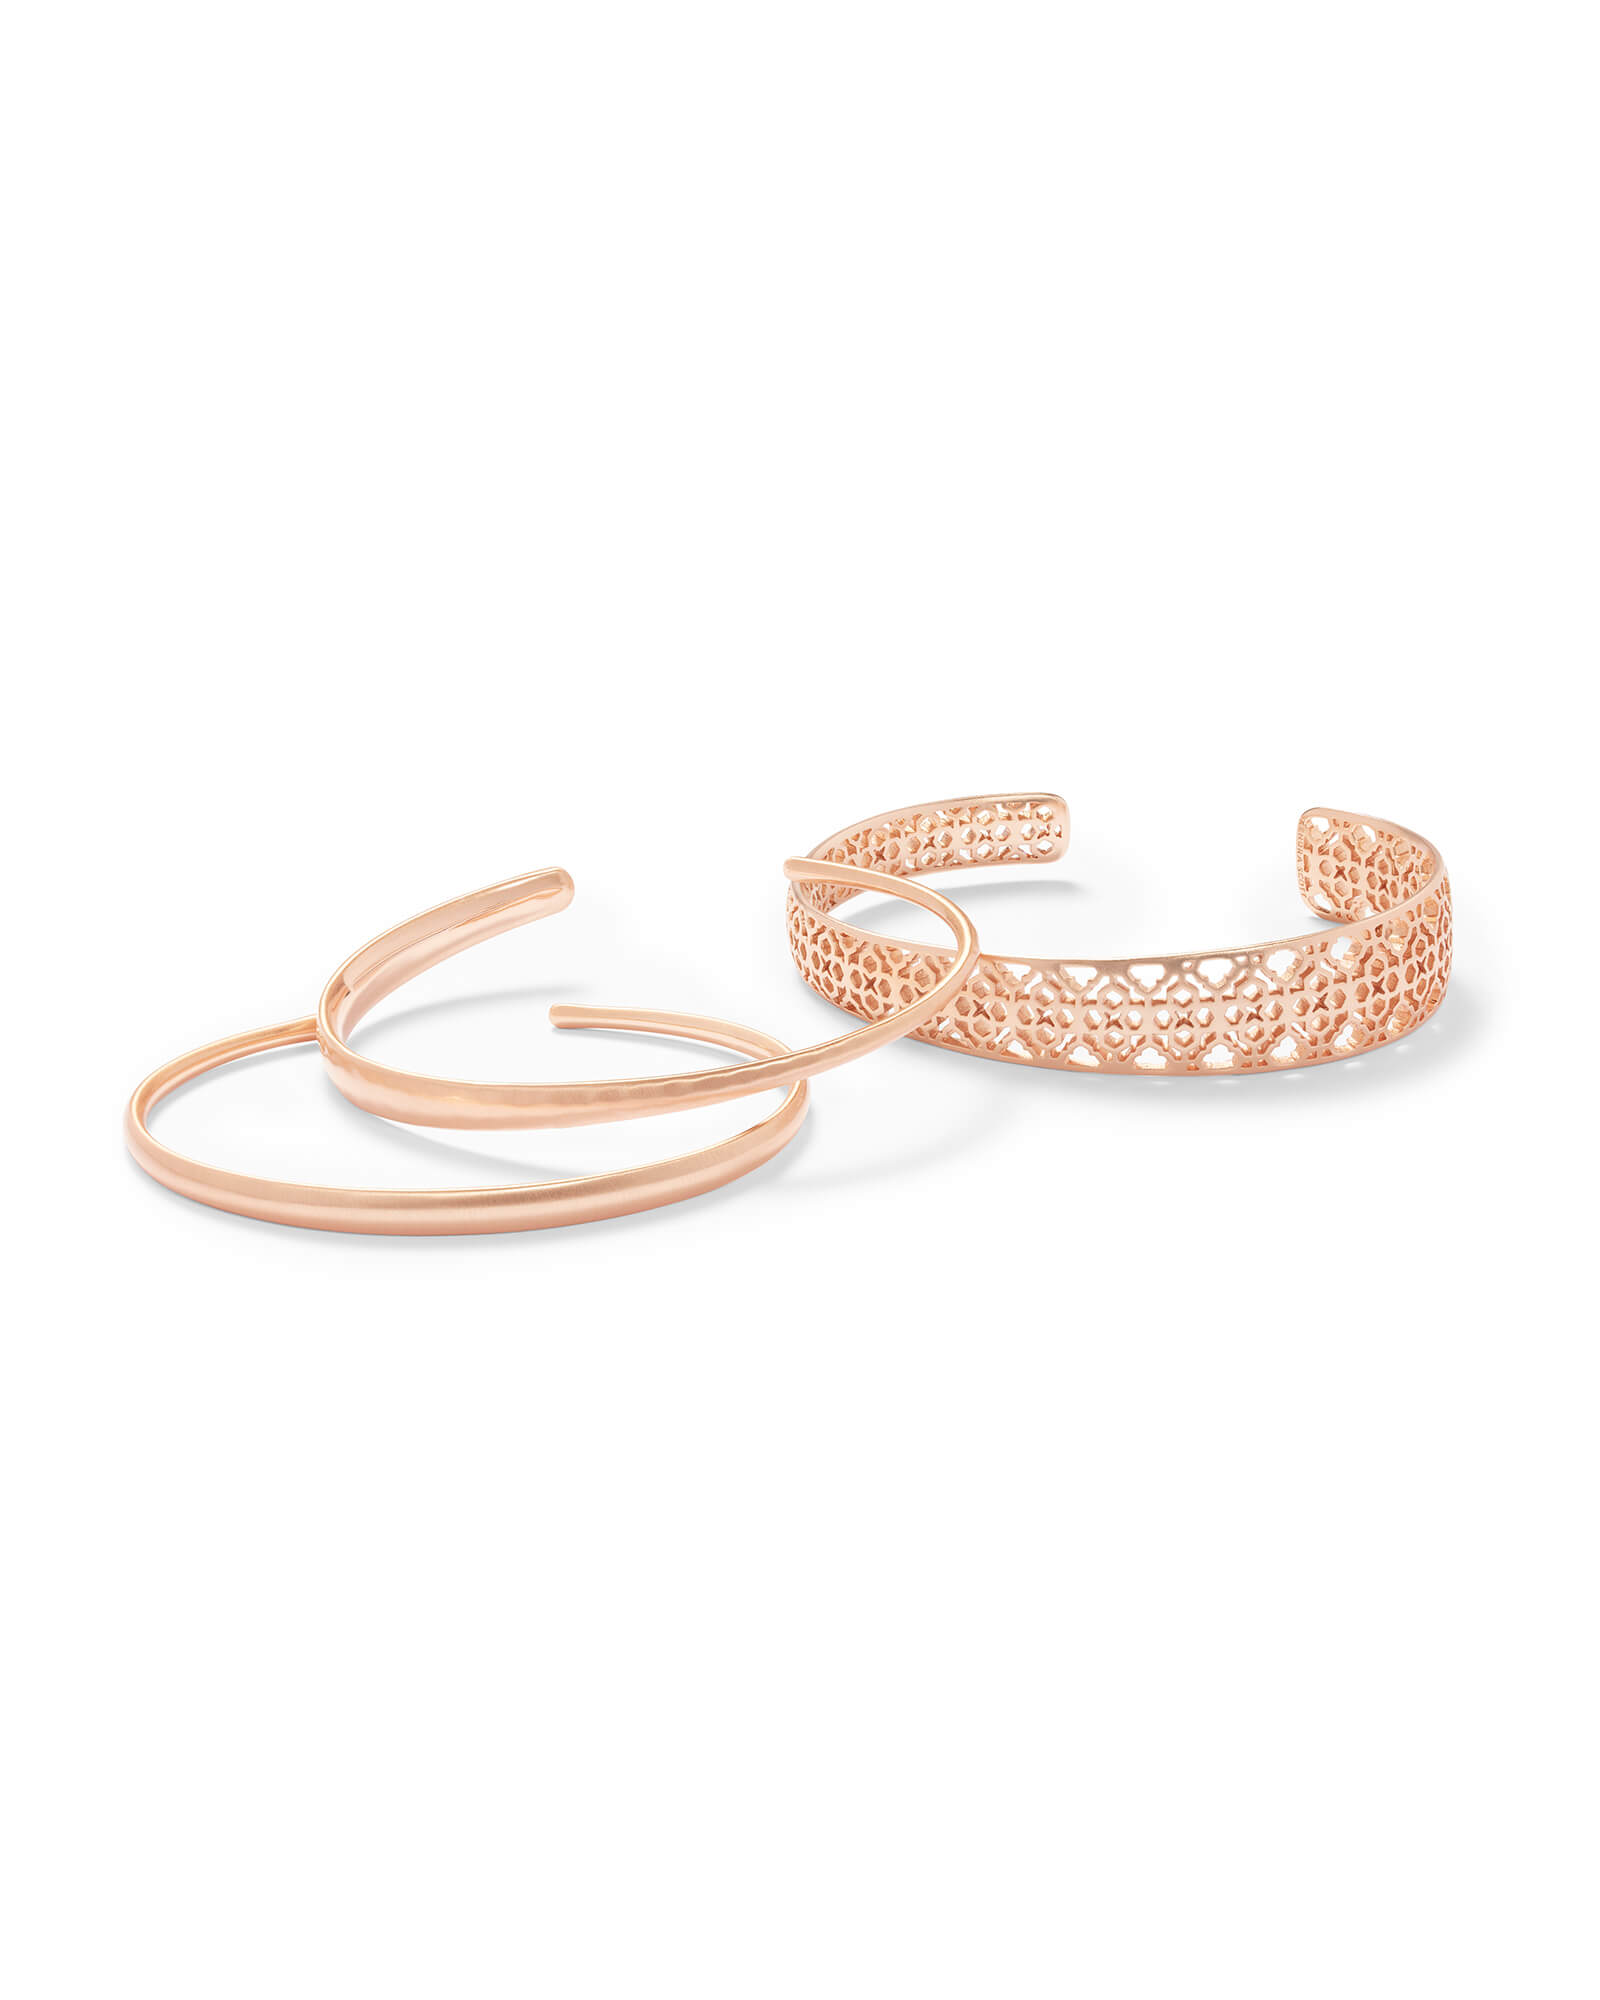 Tiana Rose Gold Pinch Bracelet Set in Rose Gold Filigree